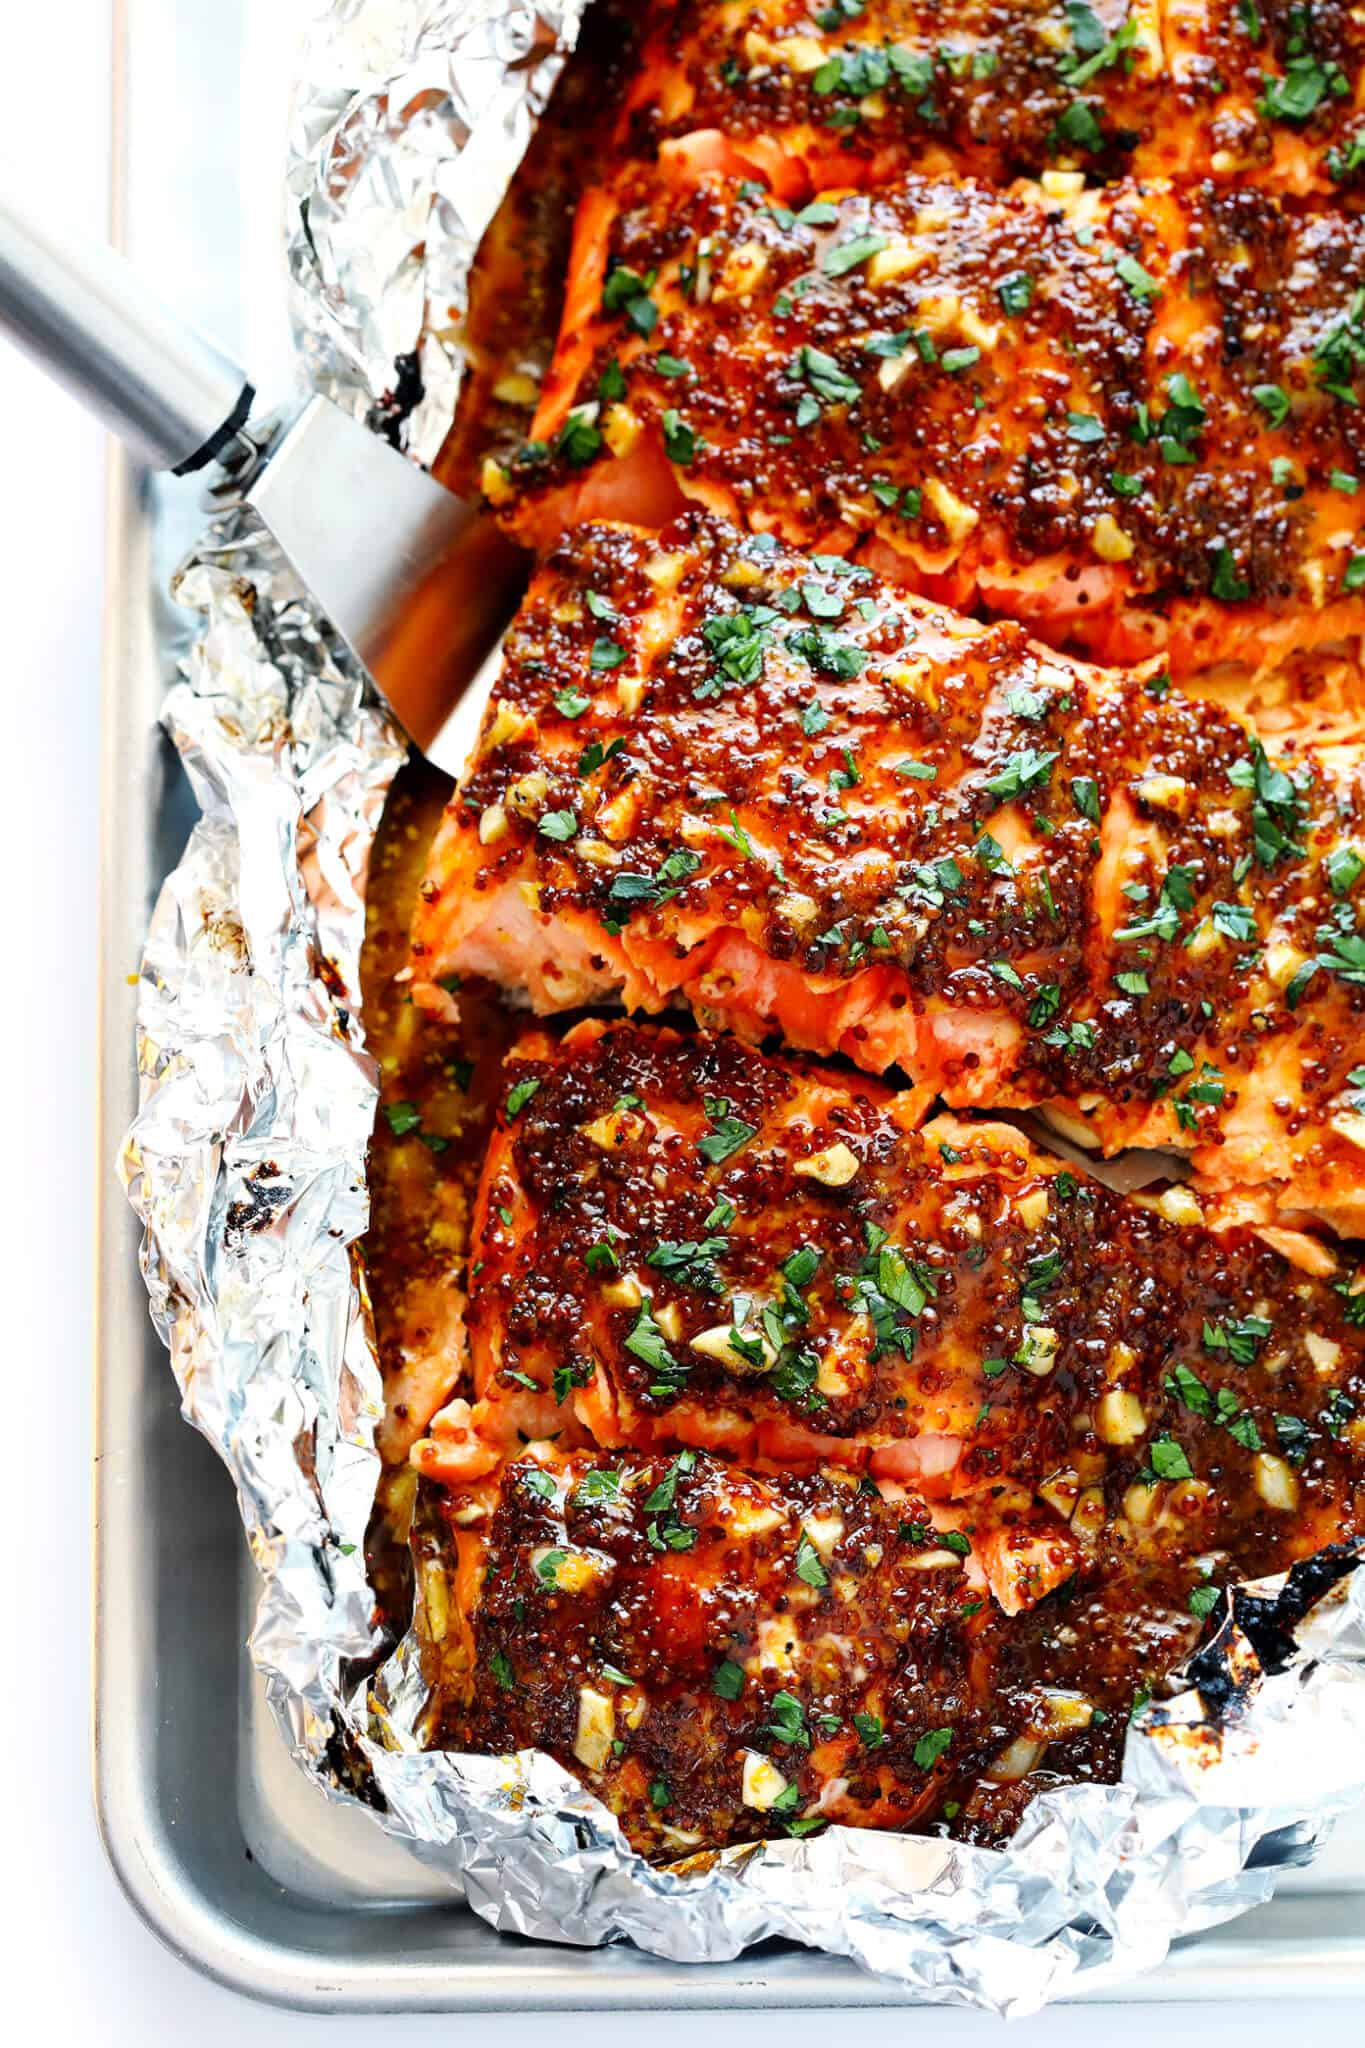 15 Best, Easy and Healthy Salmon Recipes in 30 minutes or less that you should be making for dinner. Stop wondering what to do with salmon!